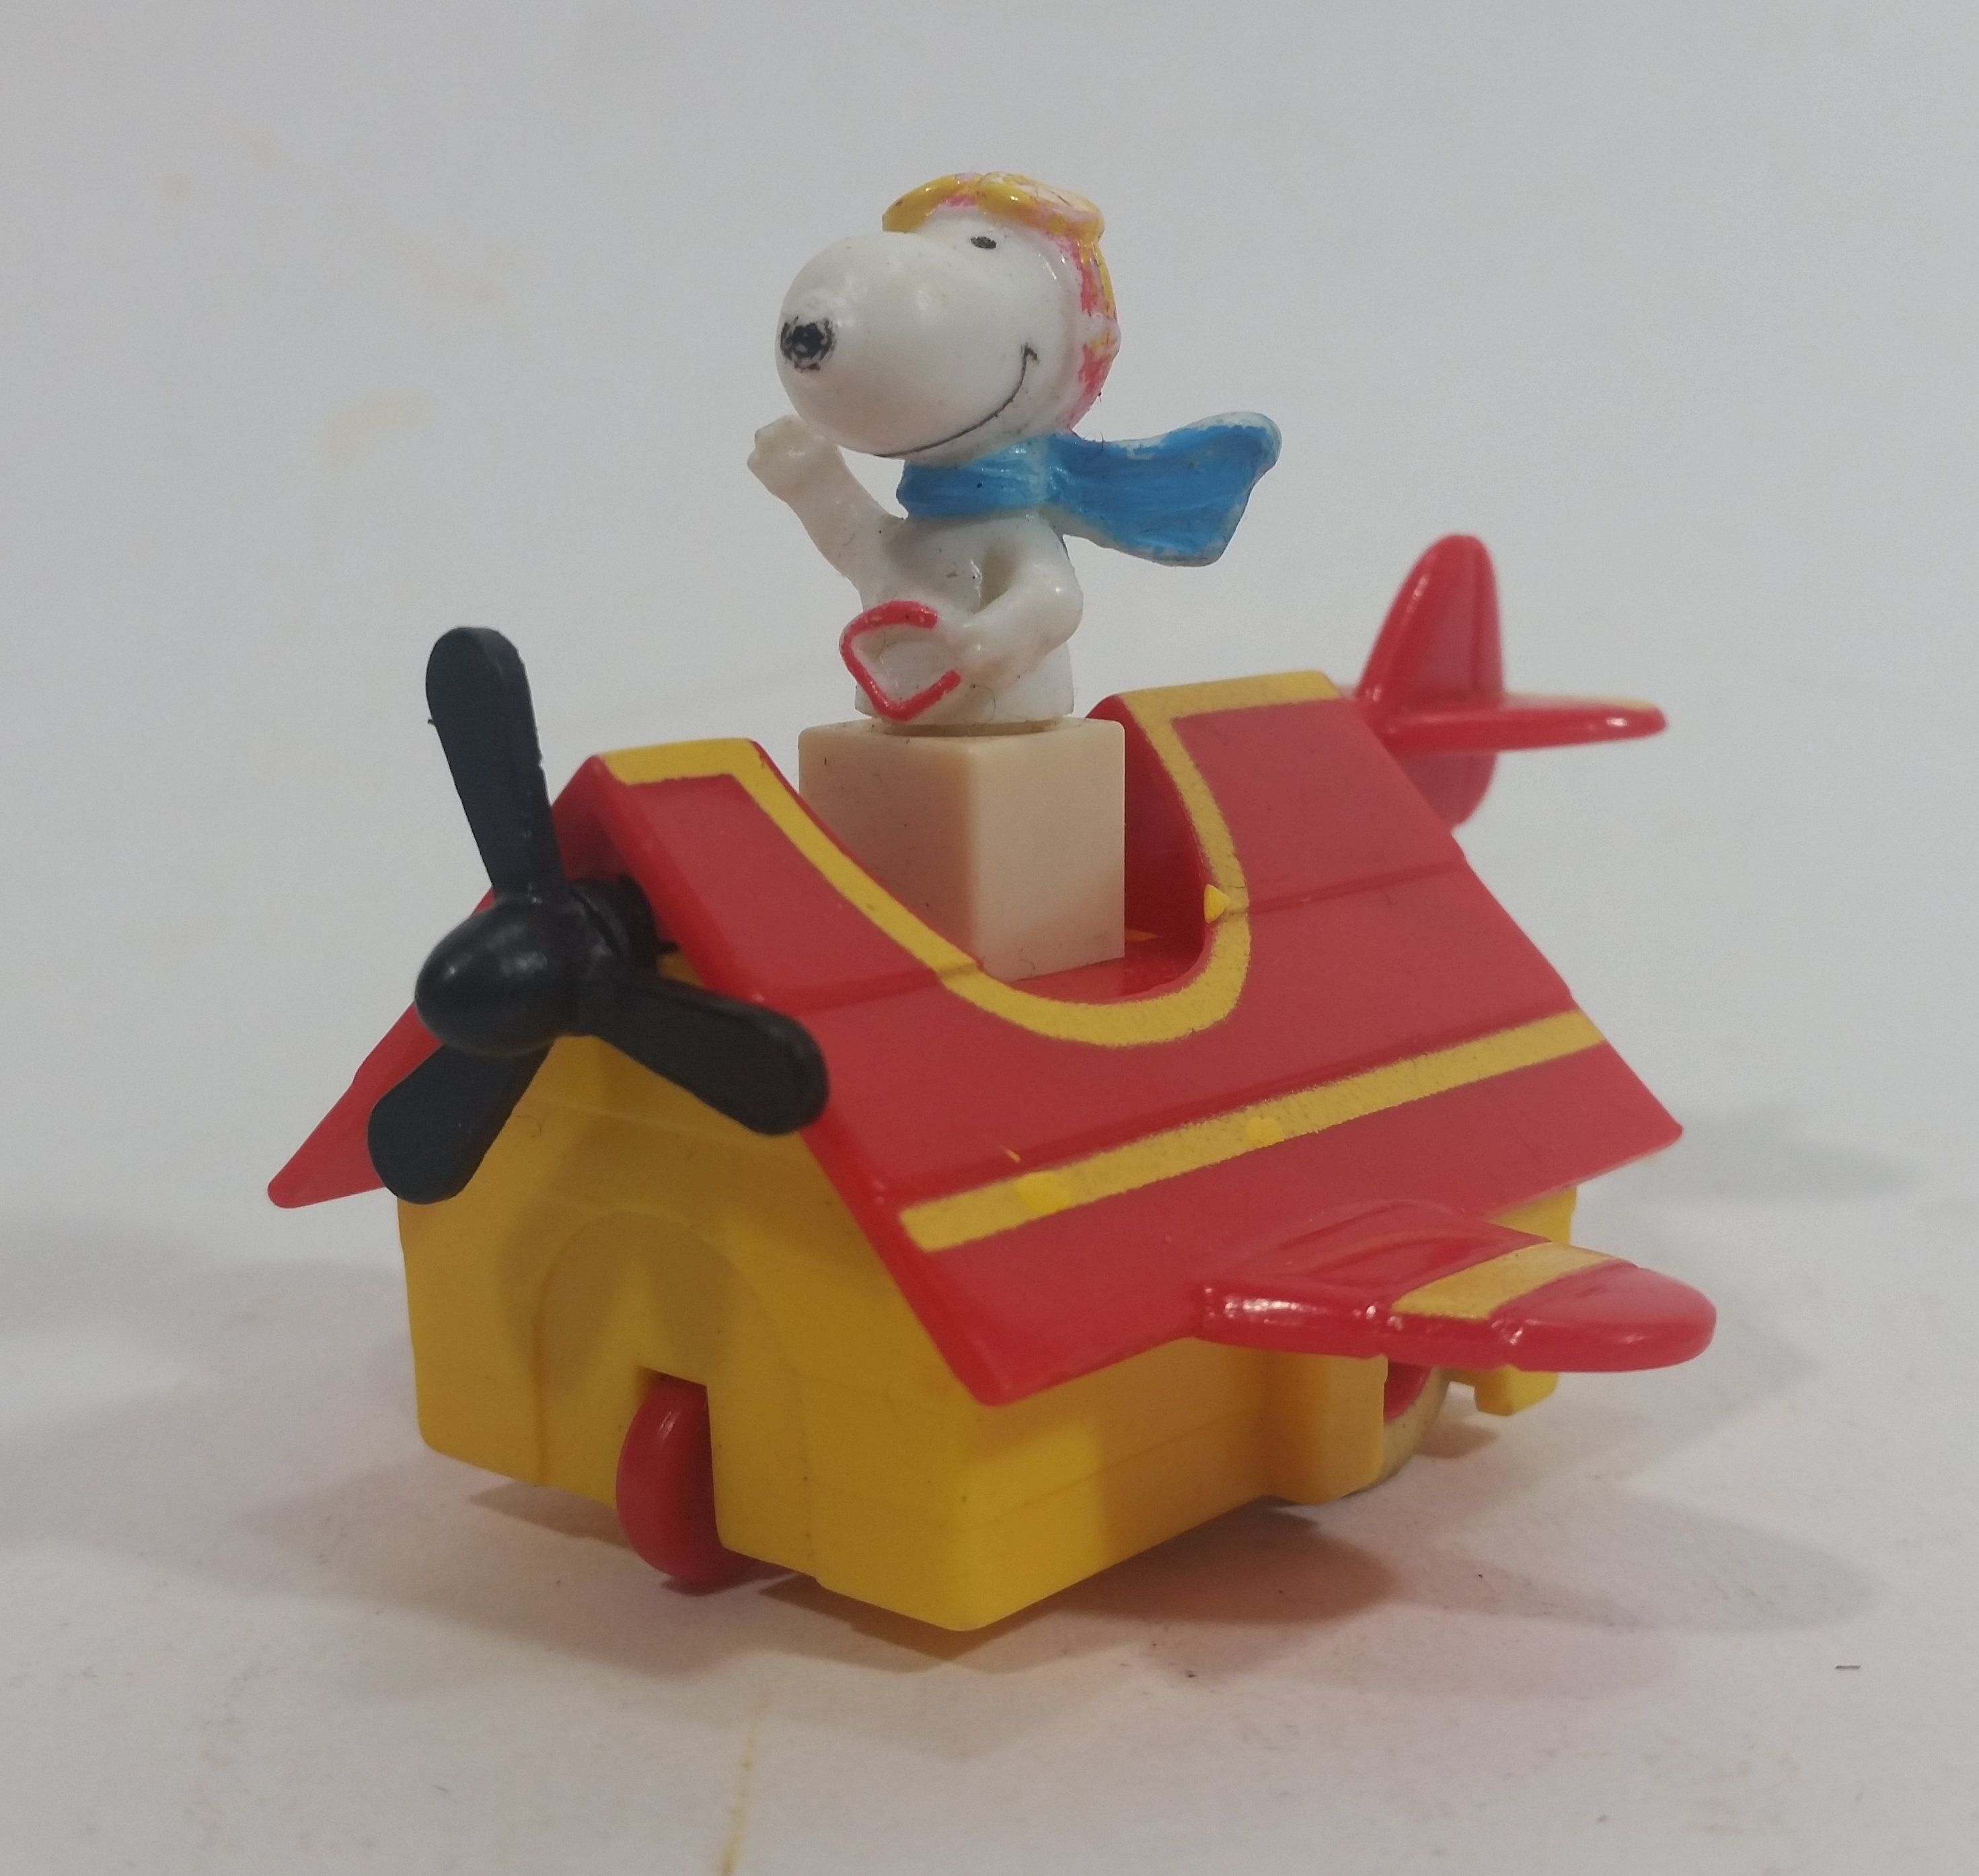 Vintage 1989 Peanuts Gang Pop Mobiles United Features Syndicate Snoopy Flying Ace Doghouse Plastic Toy Mcdonald S Happy Meals Snoopy Collectibles Plastic Toys Snoopy